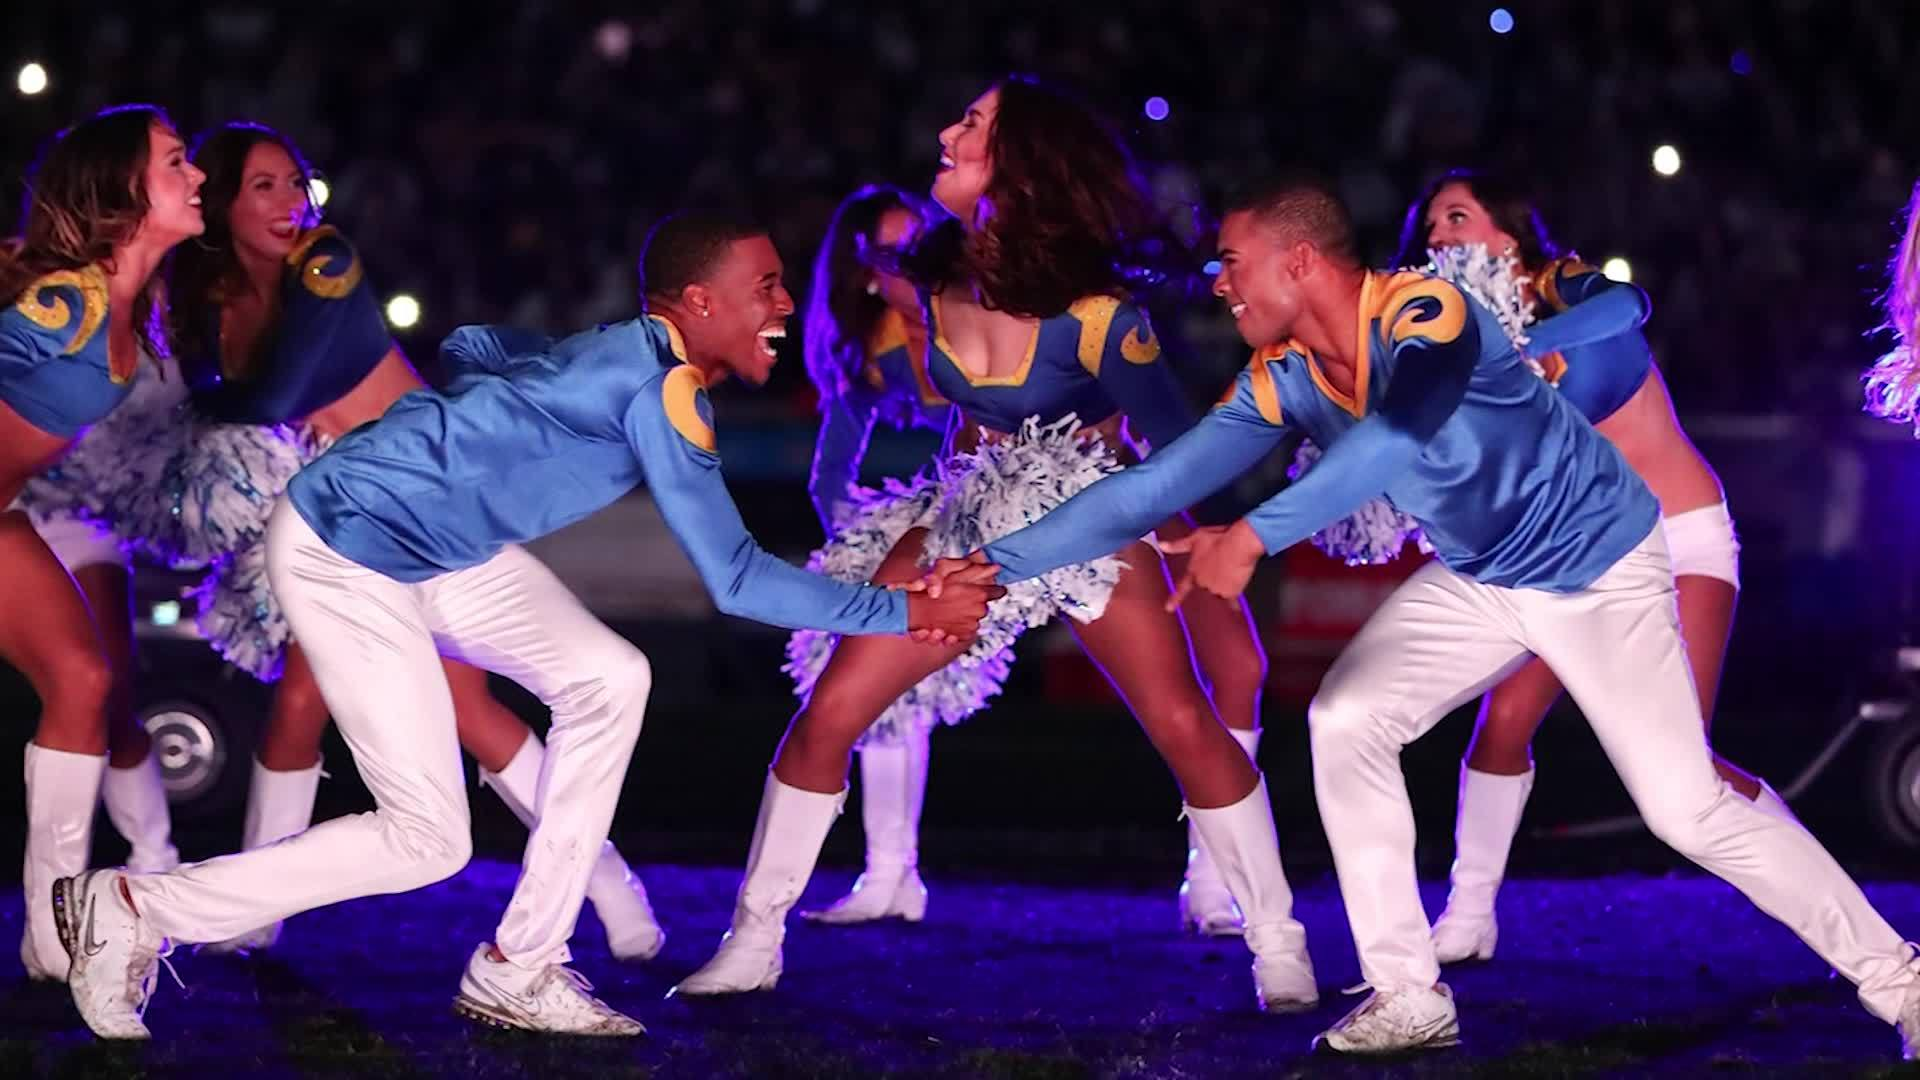 VIDEO: First male NFL cheerleaders to perform at Super Bowl